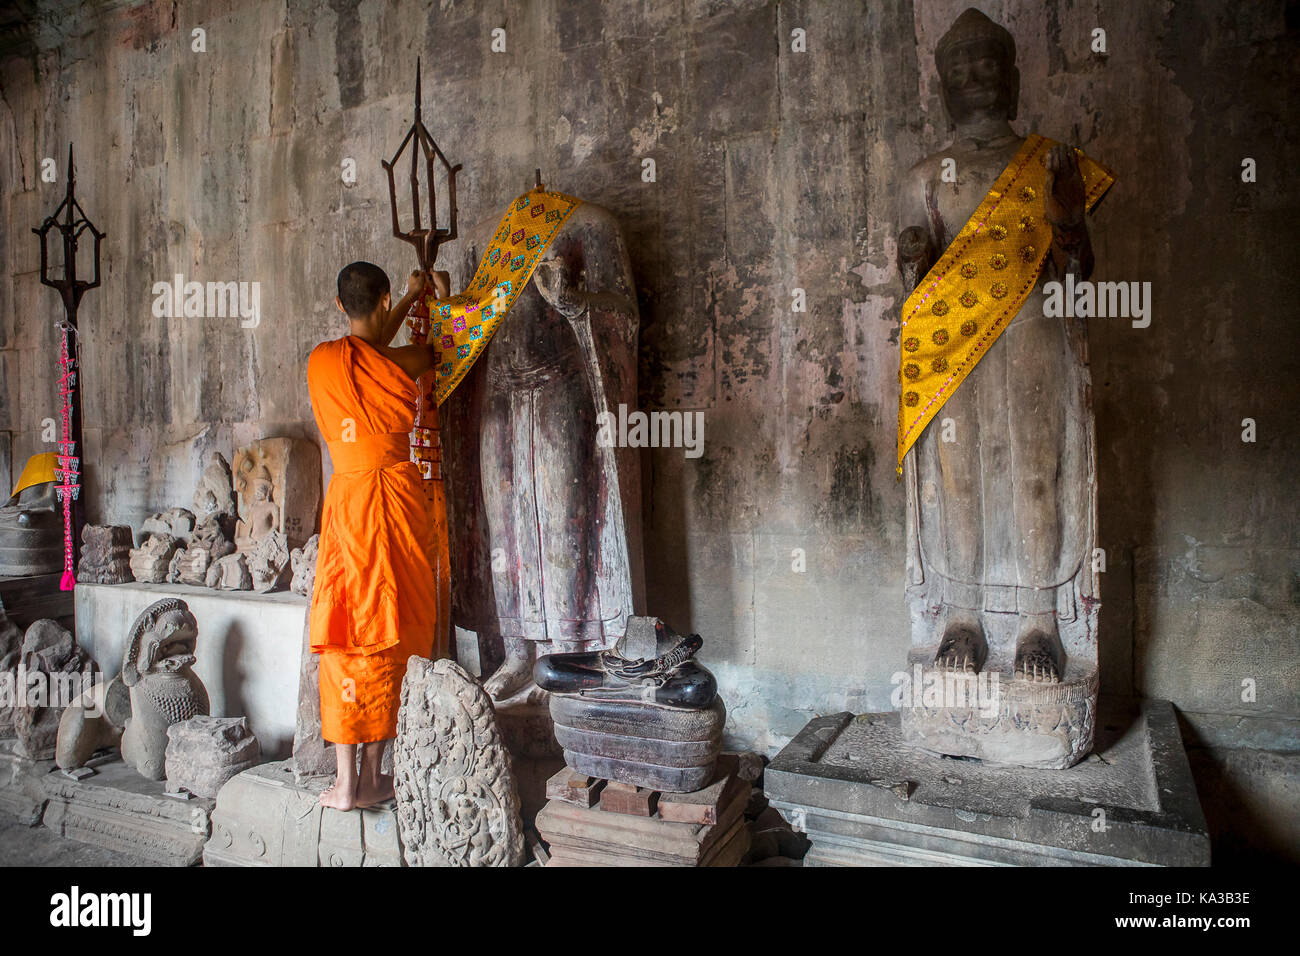 Monk embellishing religious sculptures, in Angkor Wat, Siem Reap, Cambodia Stock Photo